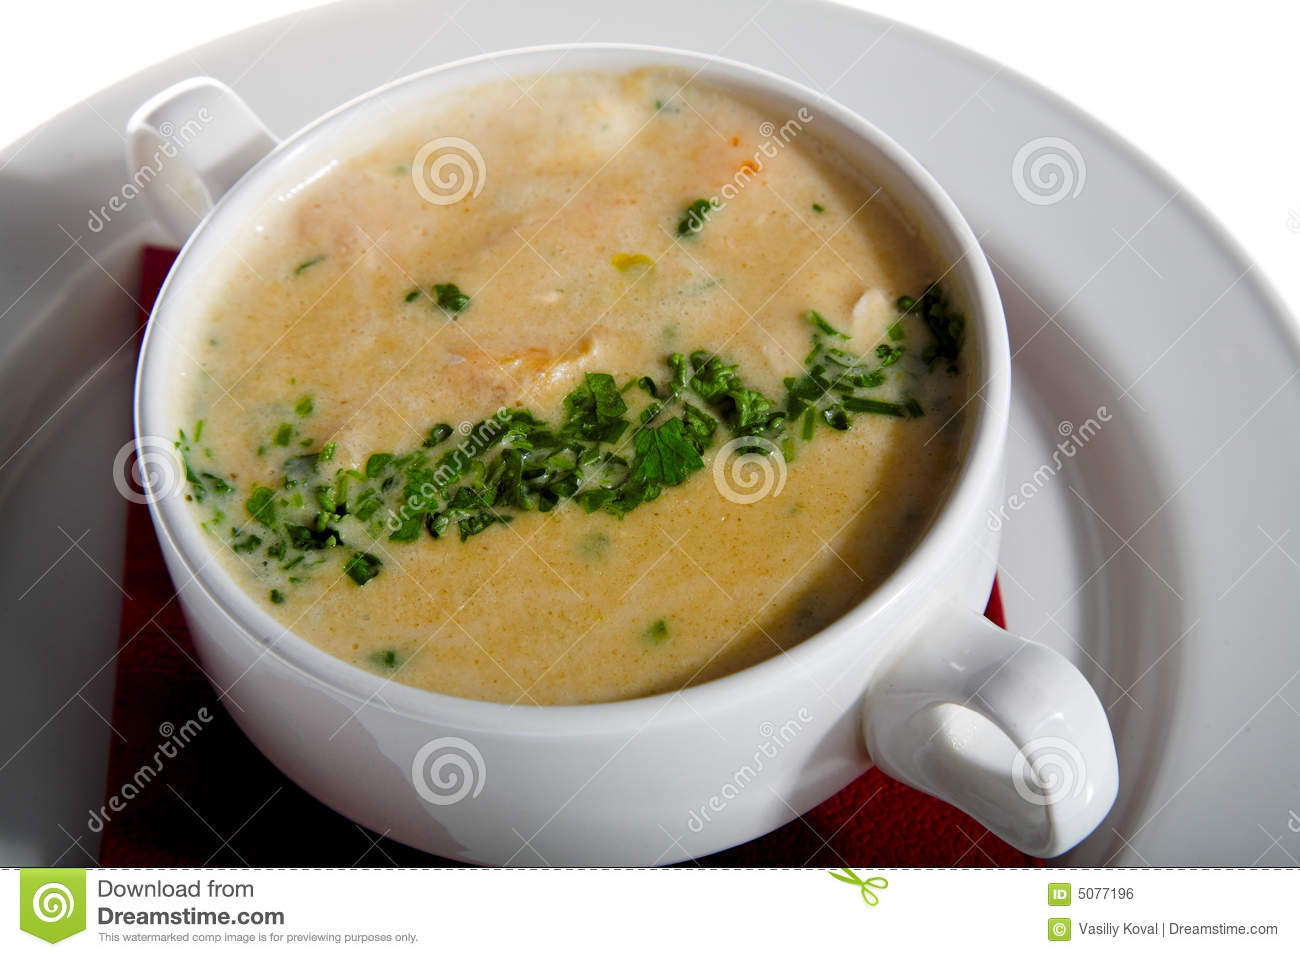 Thick Soup Royalty Free Stock Image - Image: 5077196